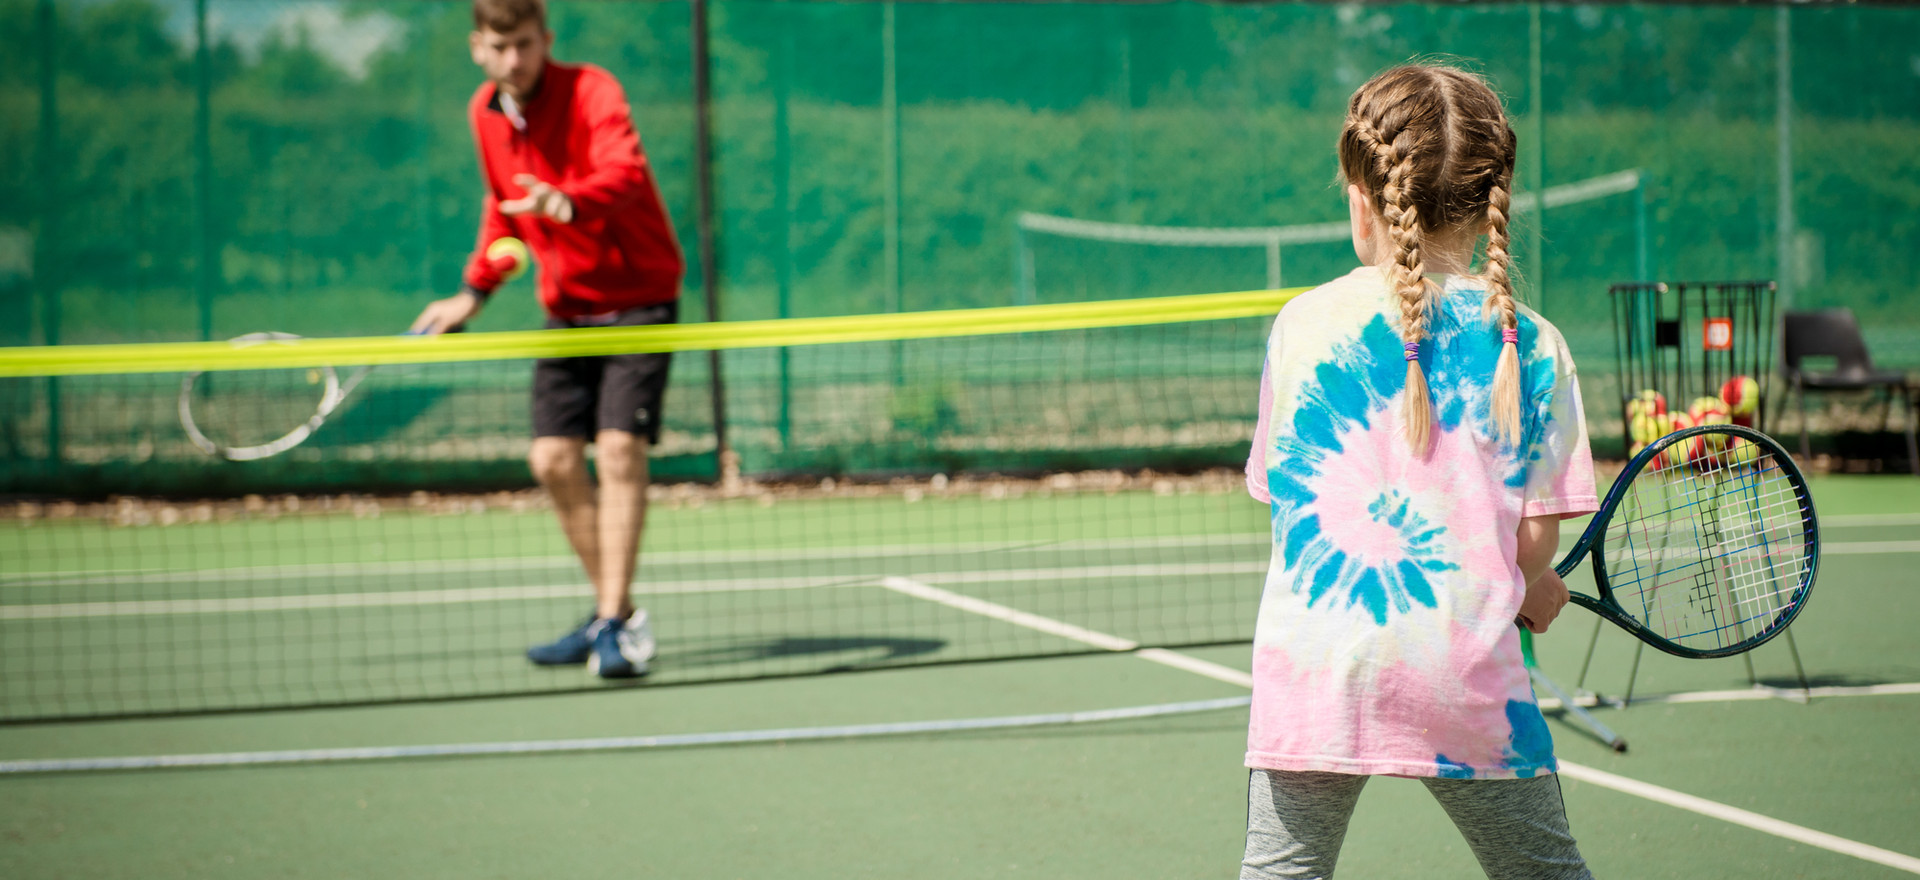 Our junior coaching sessions are great fun and very popular